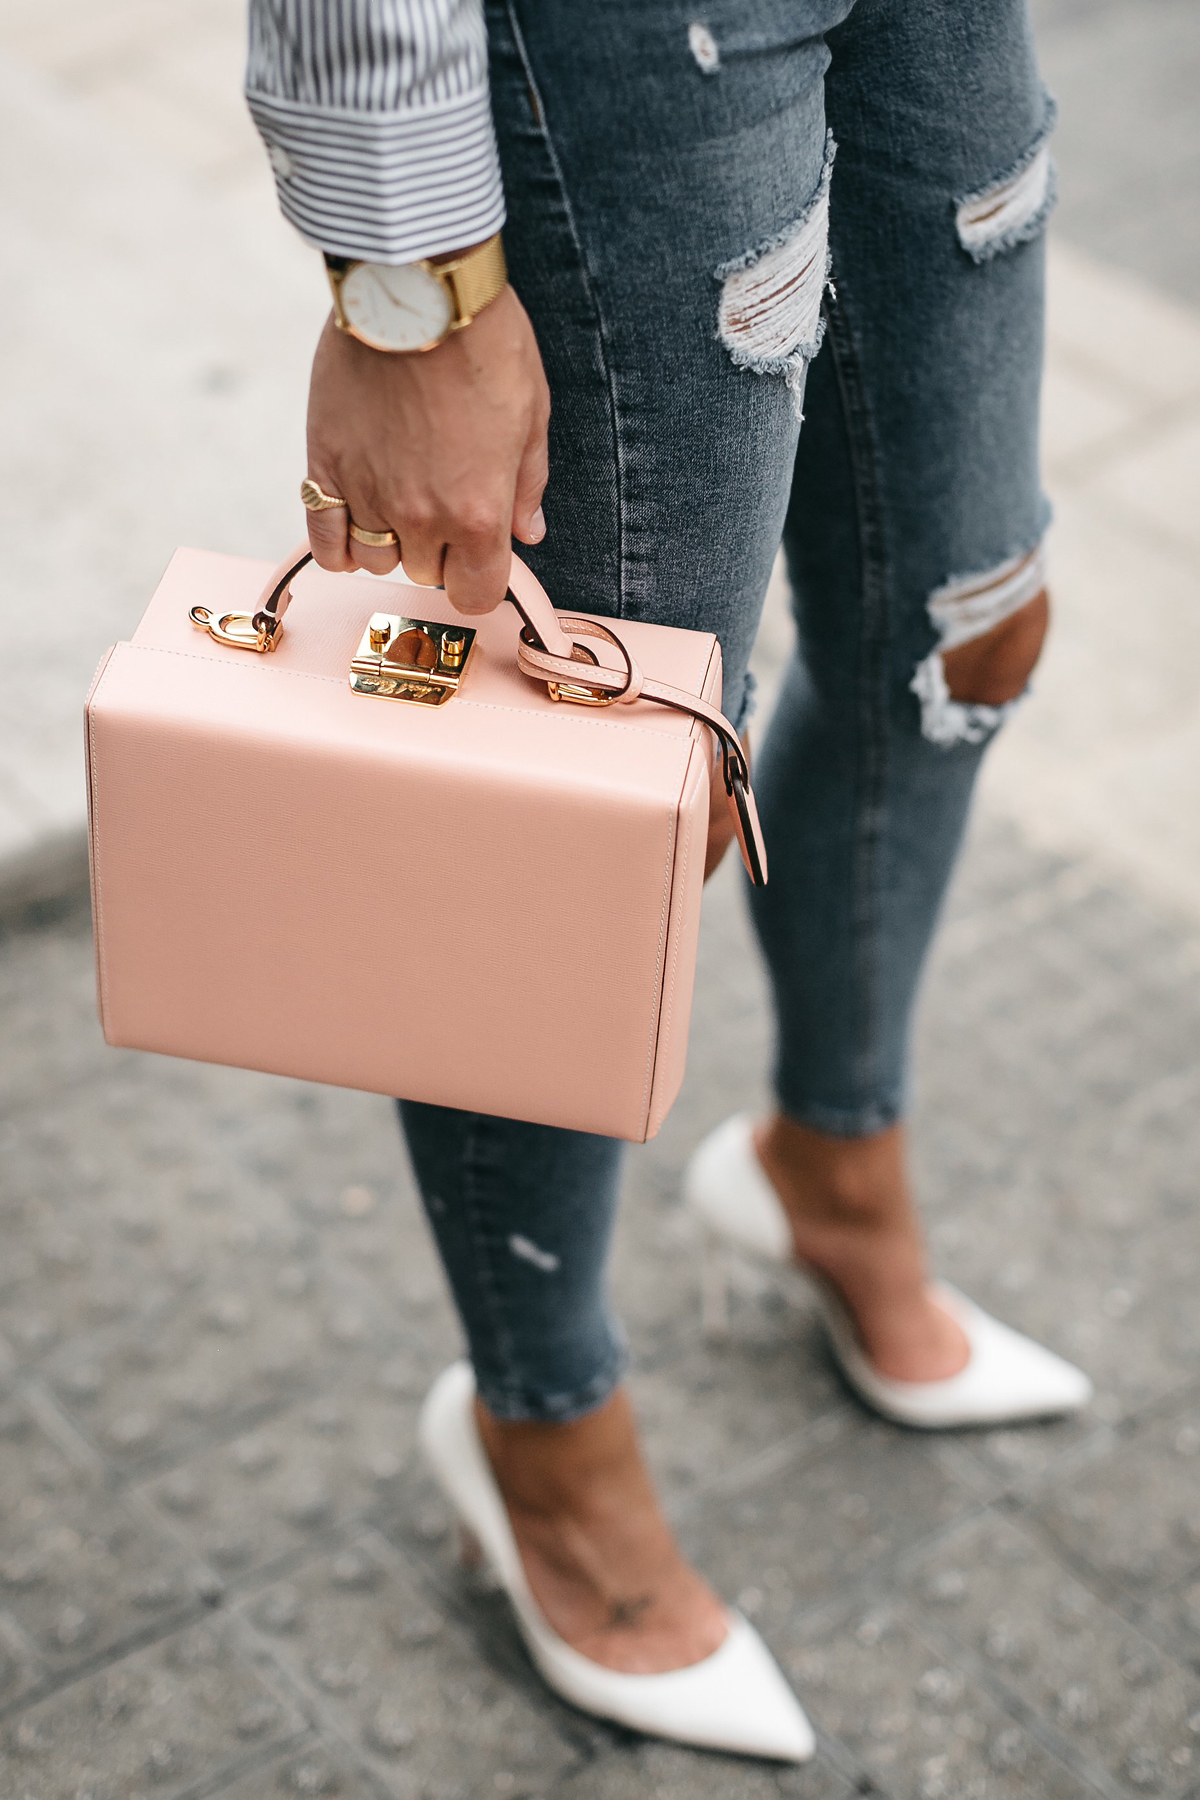 Mark Cross Saffiano Pink Bag Ripped Jeans White Pumps Fashion Jackson Dallas Blogger Fashion Blogger Street Style